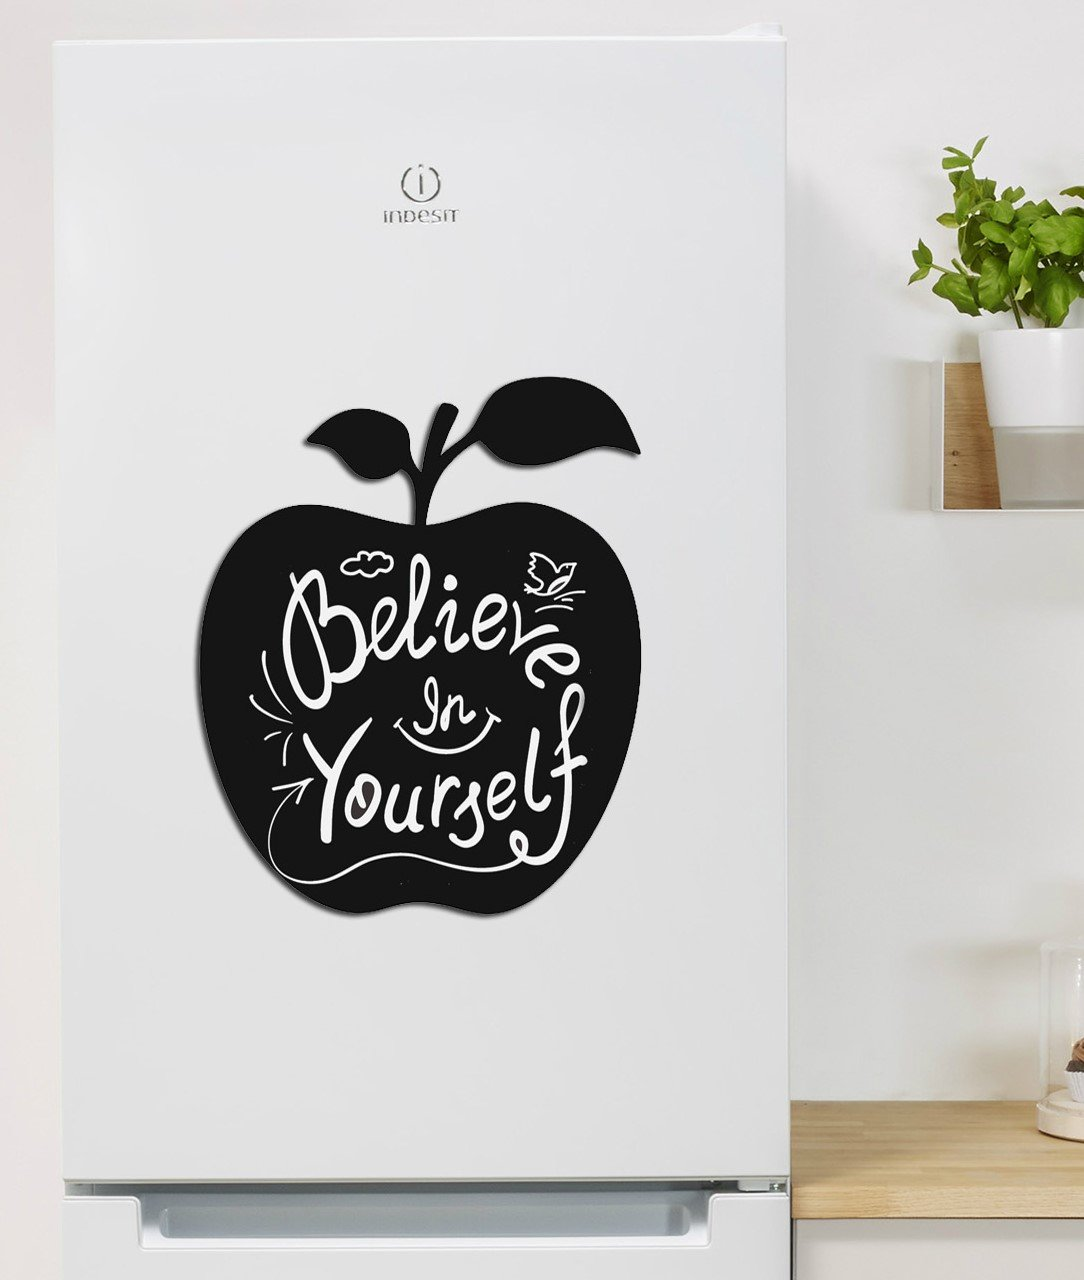 MELPOSMEL Adhesive Decal with Chalkboard-Surface 12 x 14.5 Black Apple Design for Chalk Writings Just Peel and Stick.